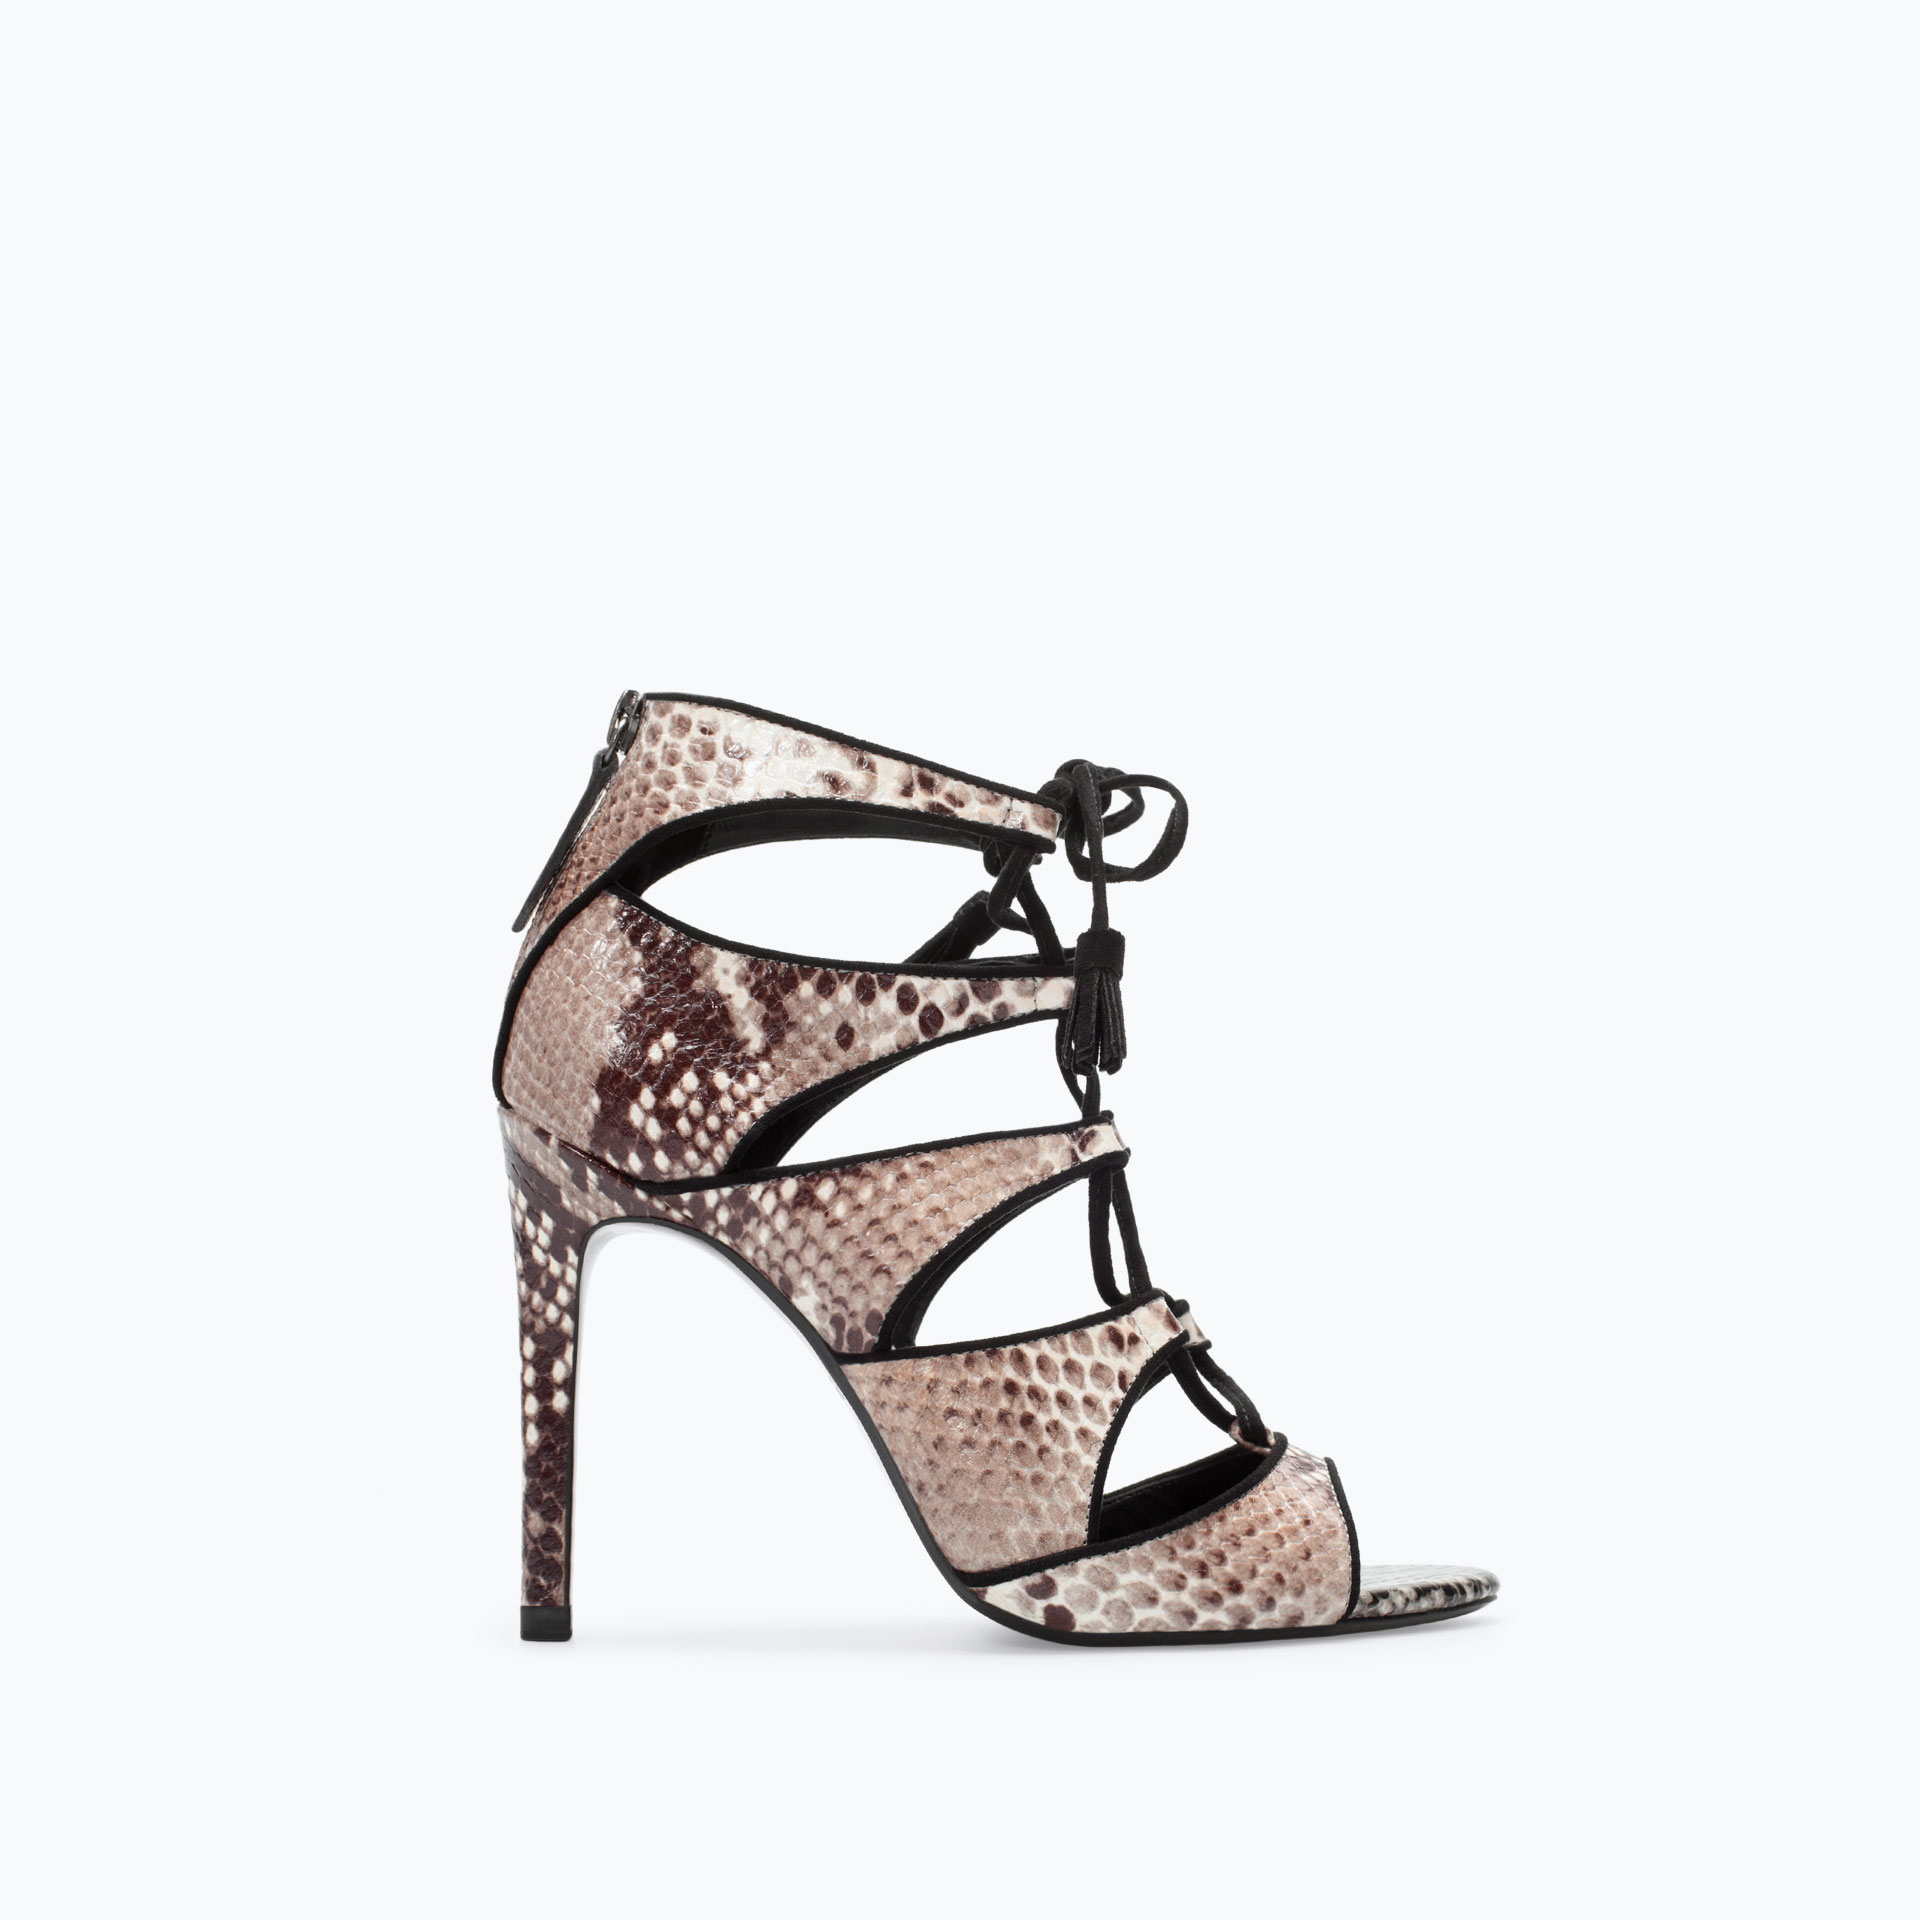 7f12fcdf1a4 HIGH HEEL SNAKE PRINT LEATHER SANDAL - Heeled sandals ...